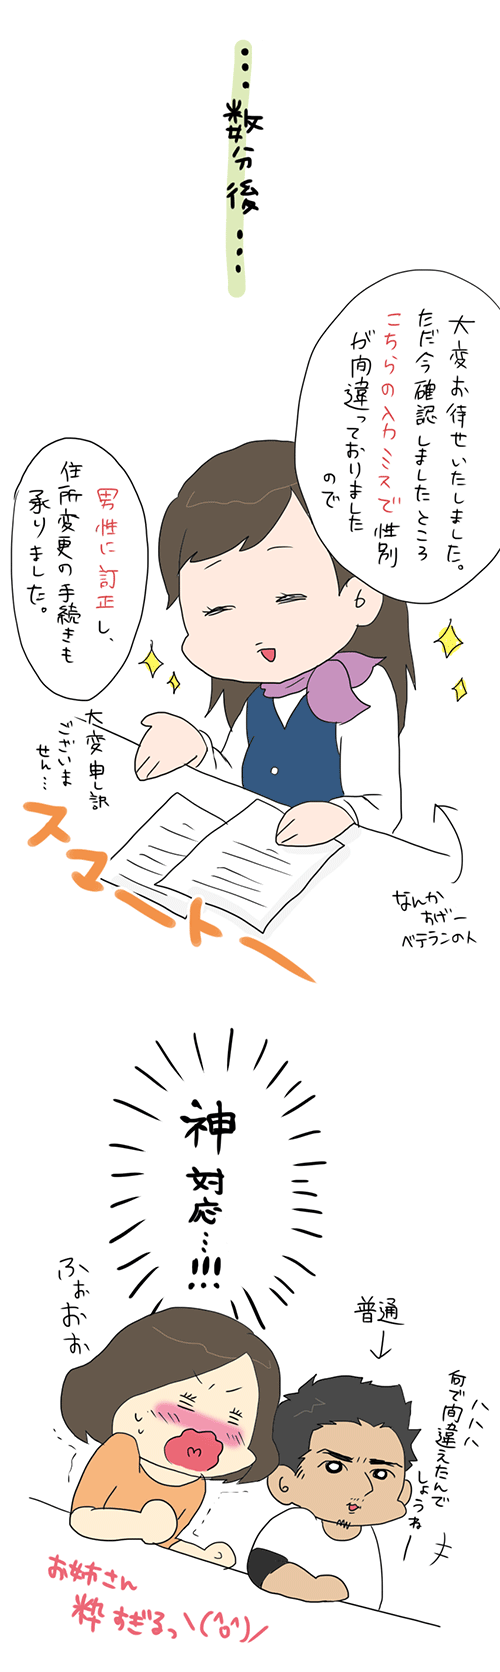 20140905_2.png